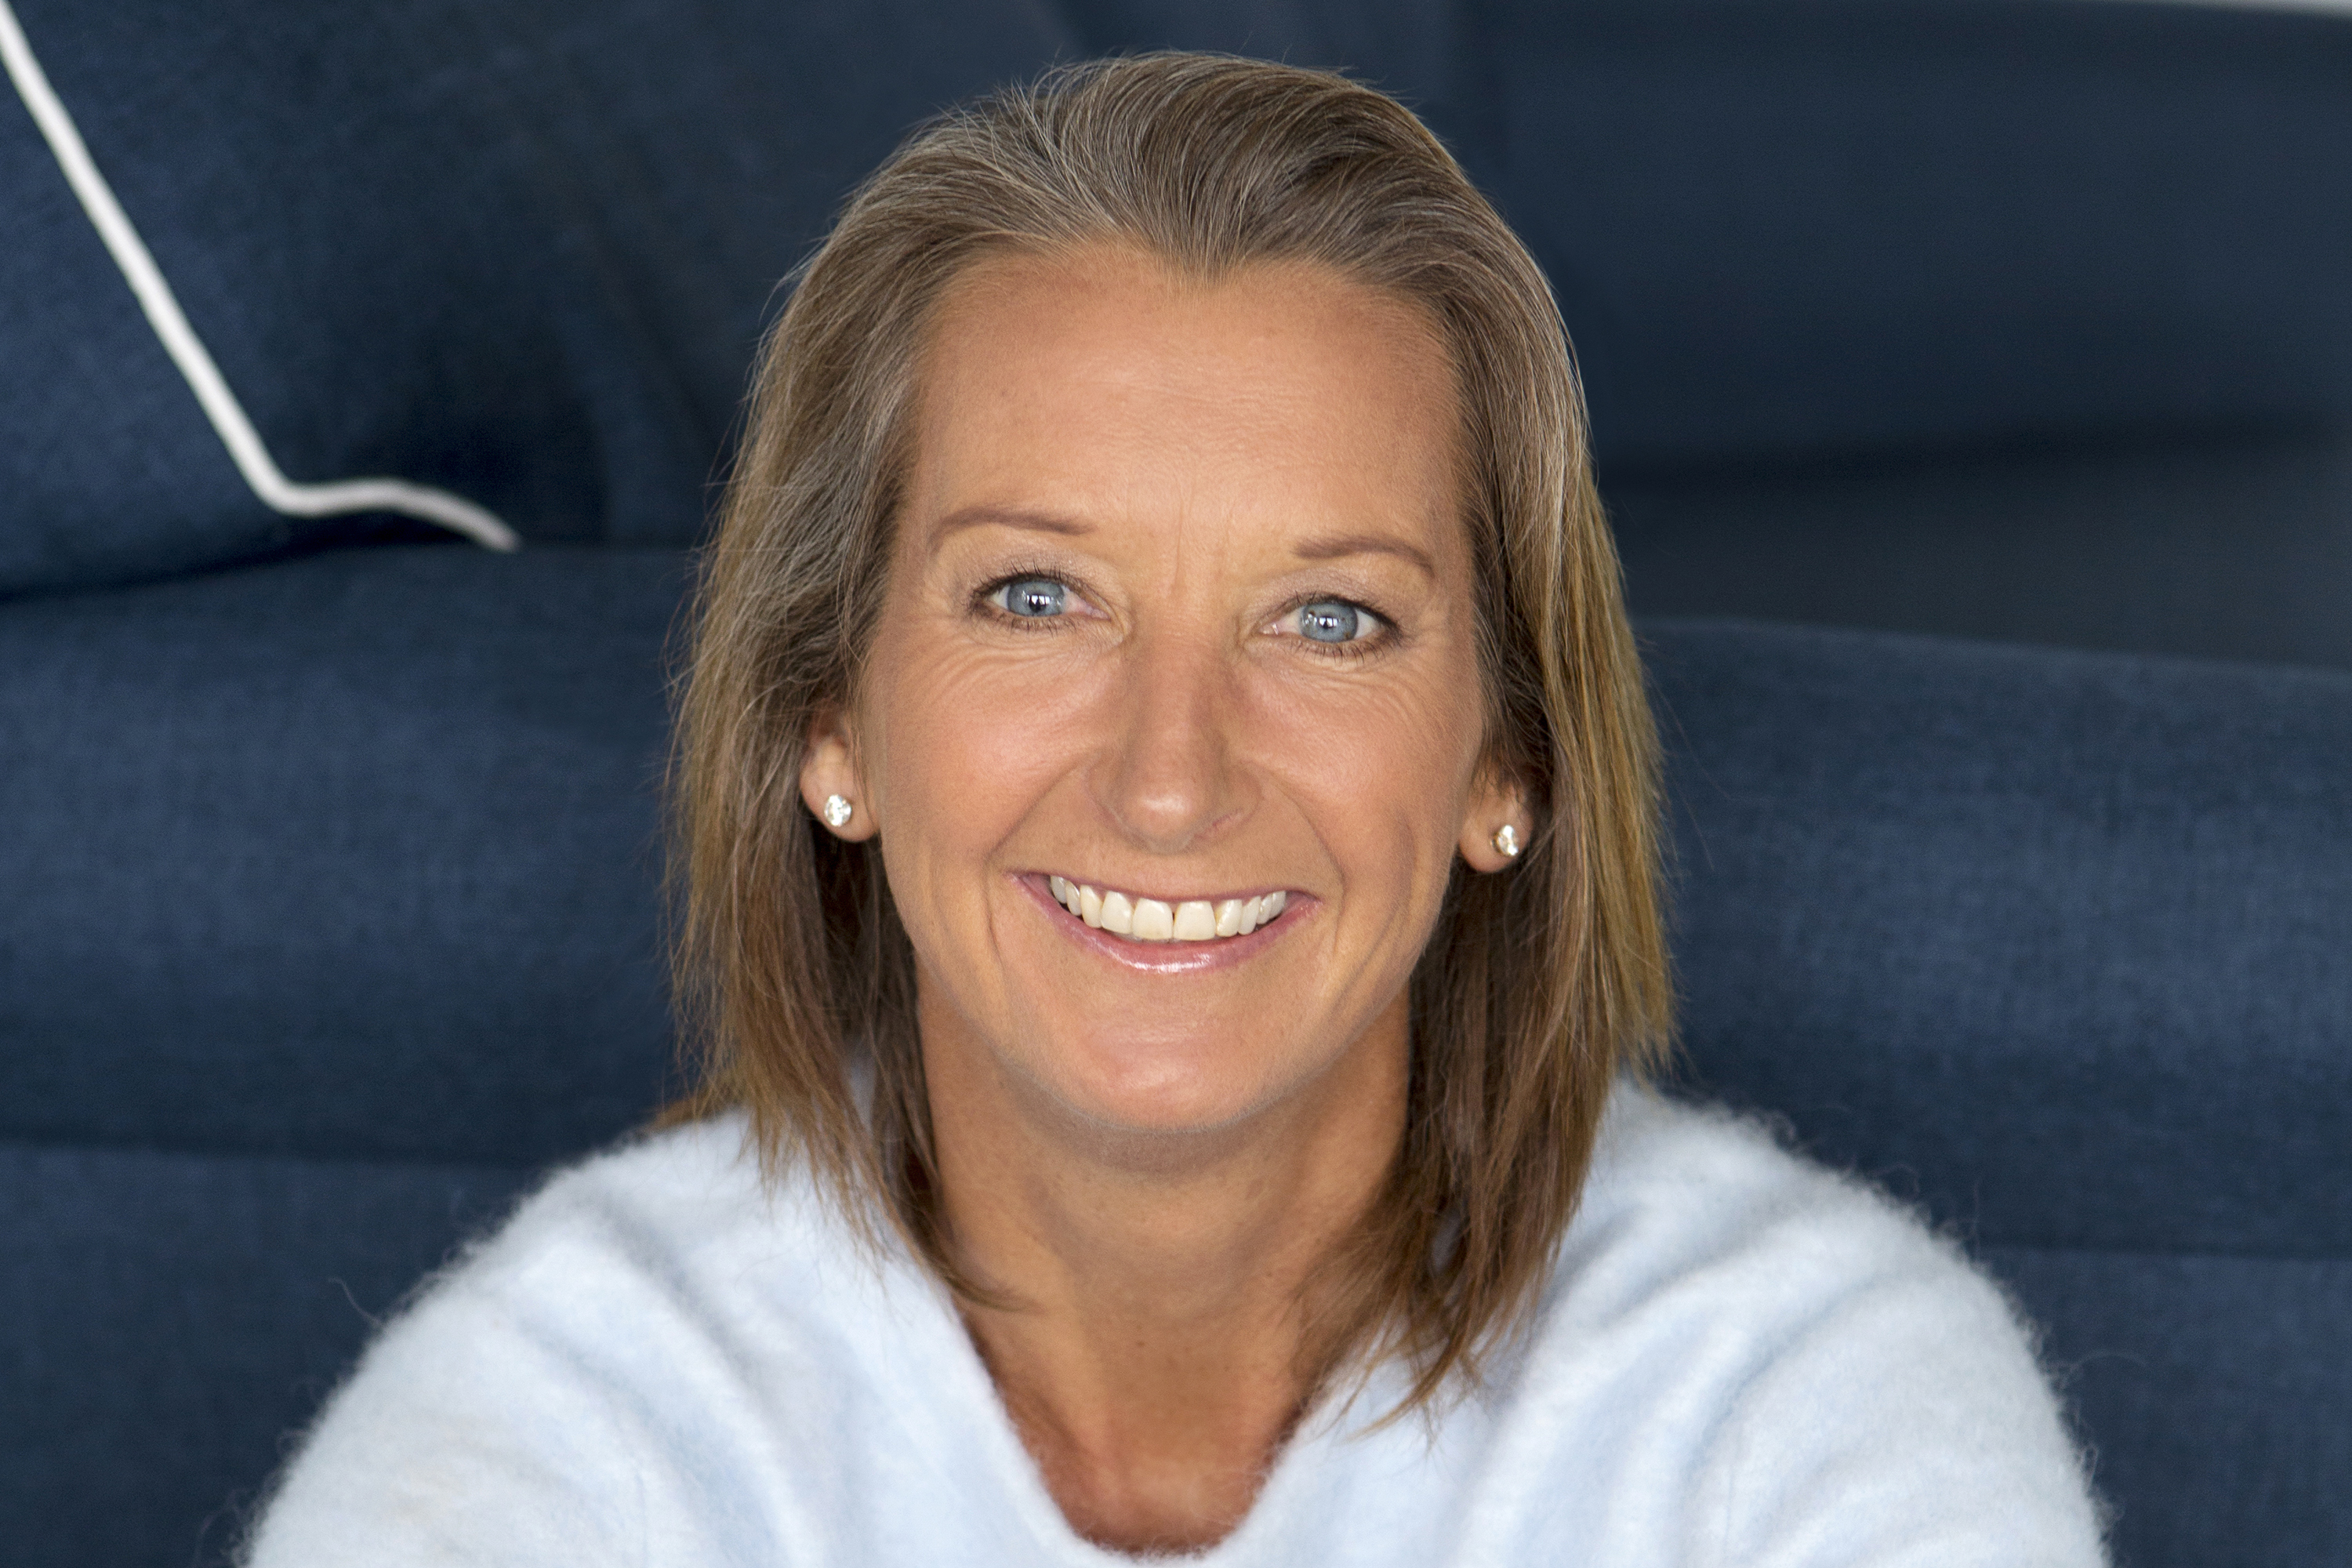 Speakers related to Dean Jones: Layne Beachley